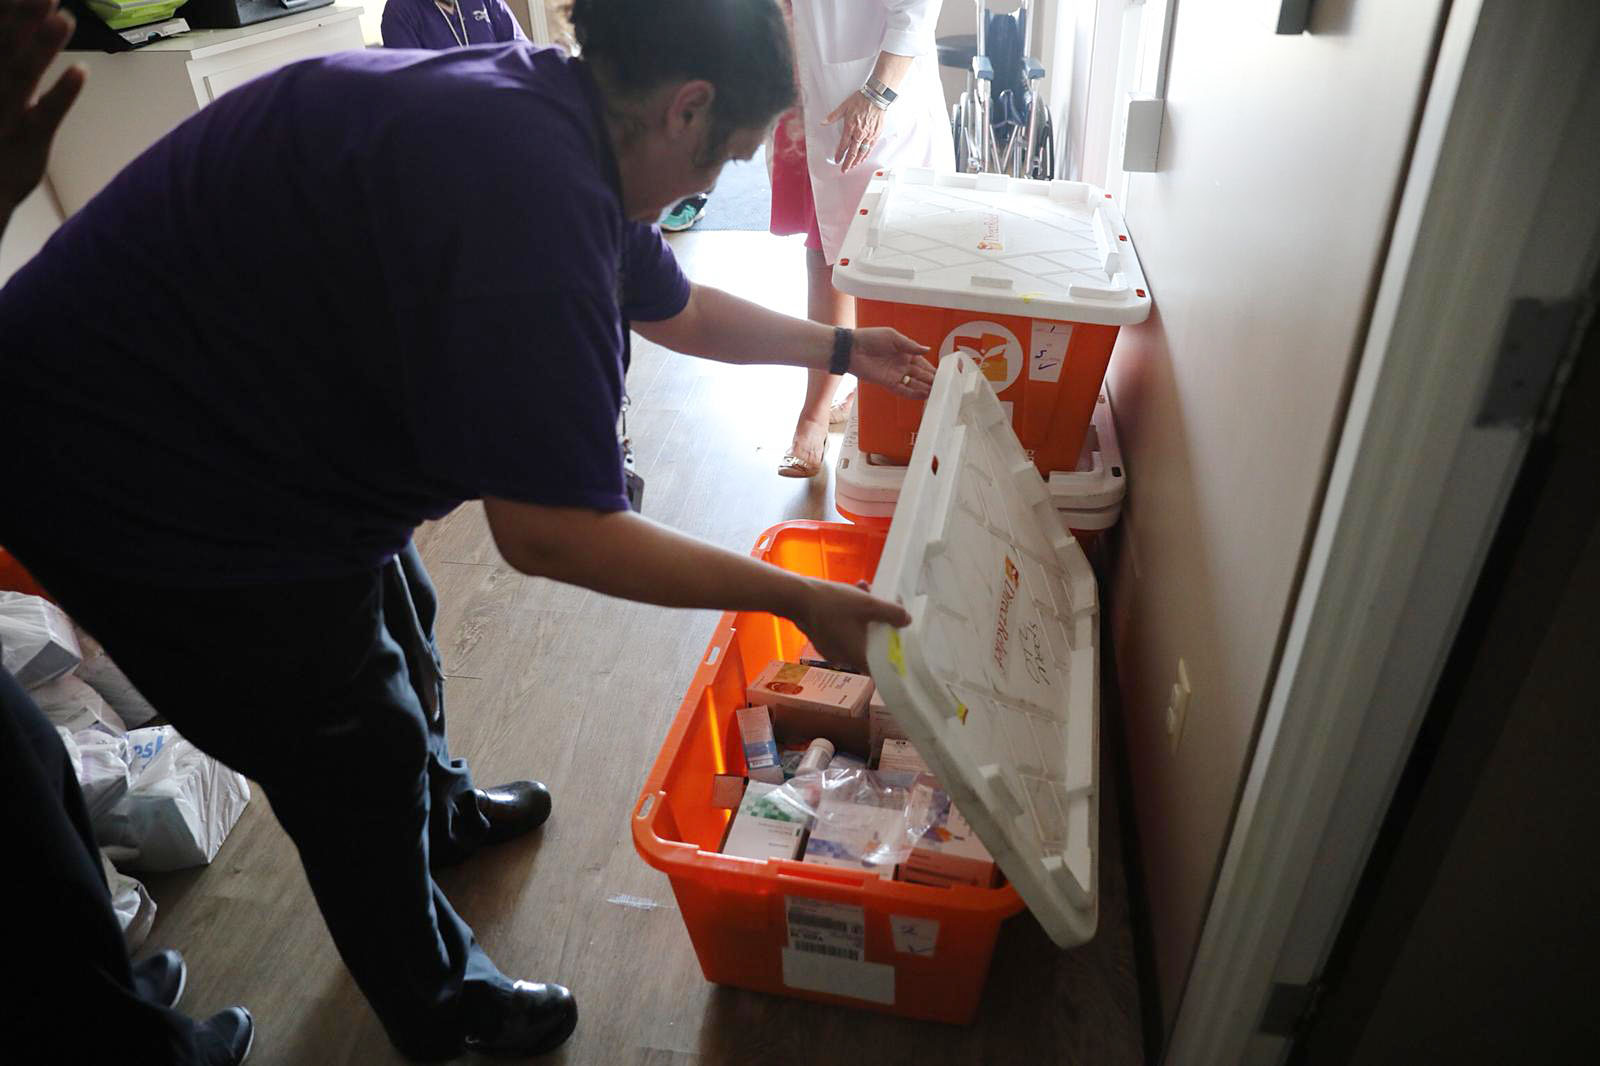 CommWell Health staff inventory medicines from Direct Relief as they work to treat patients in Harrells, North Carolina, on Sept. 19, 2018. (Photo by Mark Semegen for Direct Relief)